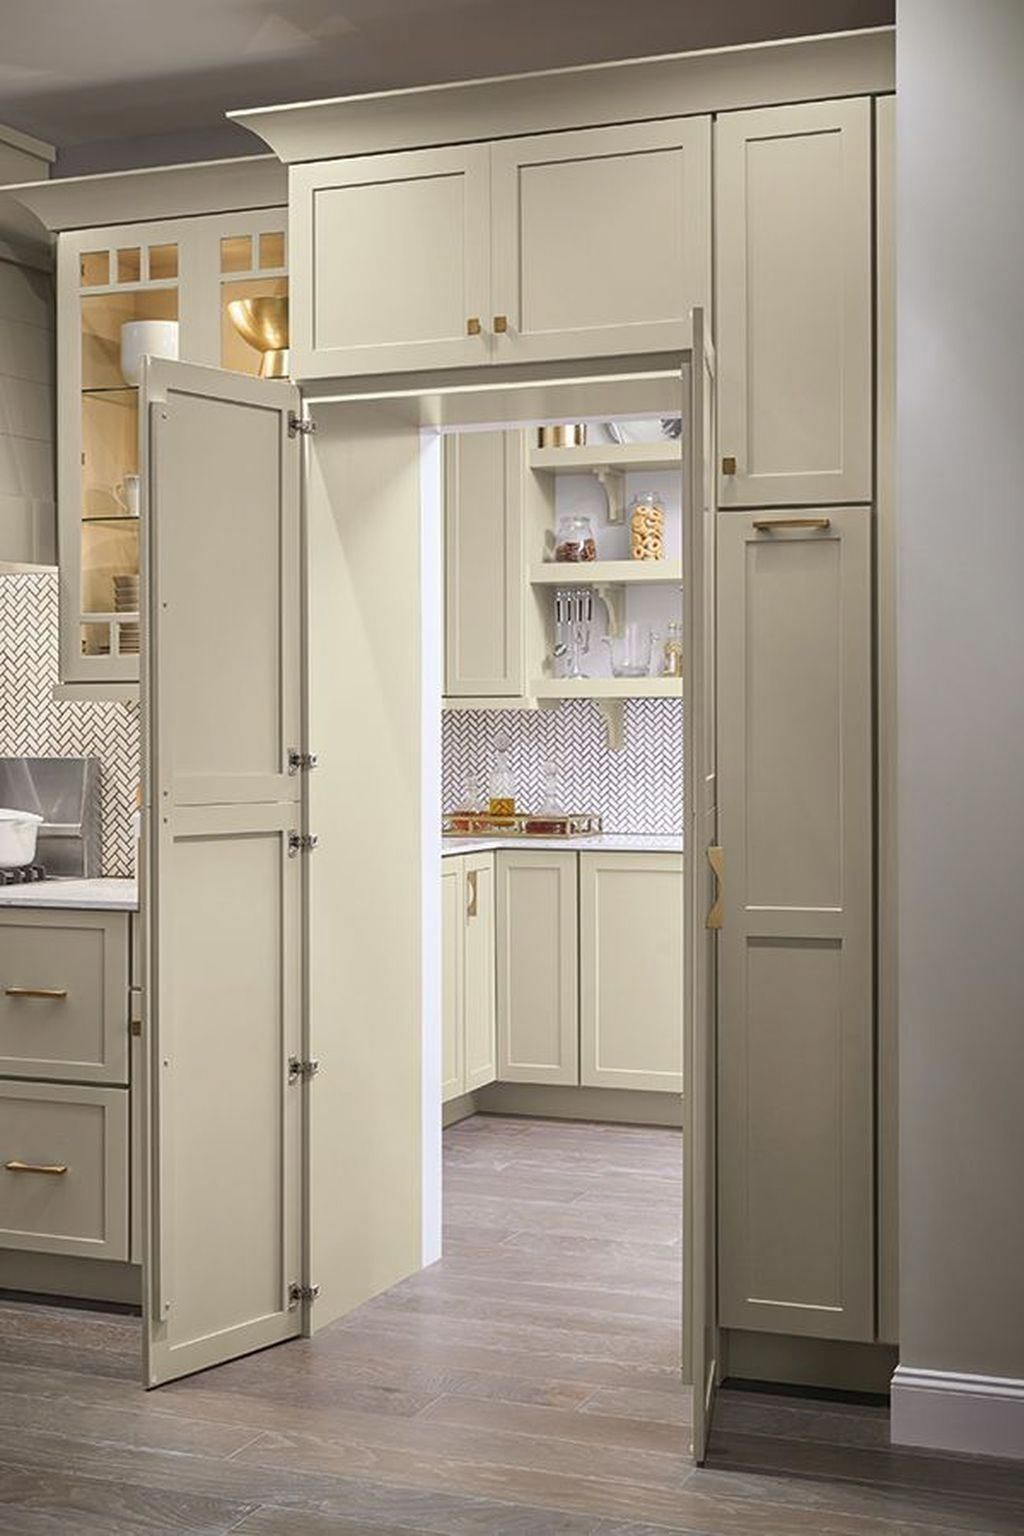 Learn Some Pointers That Can Help You Choose What You Ought To Do For Your Home Improvement Jobs It In 2020 Pantry Design Kitchen Pantry Design Best Kitchen Cabinets